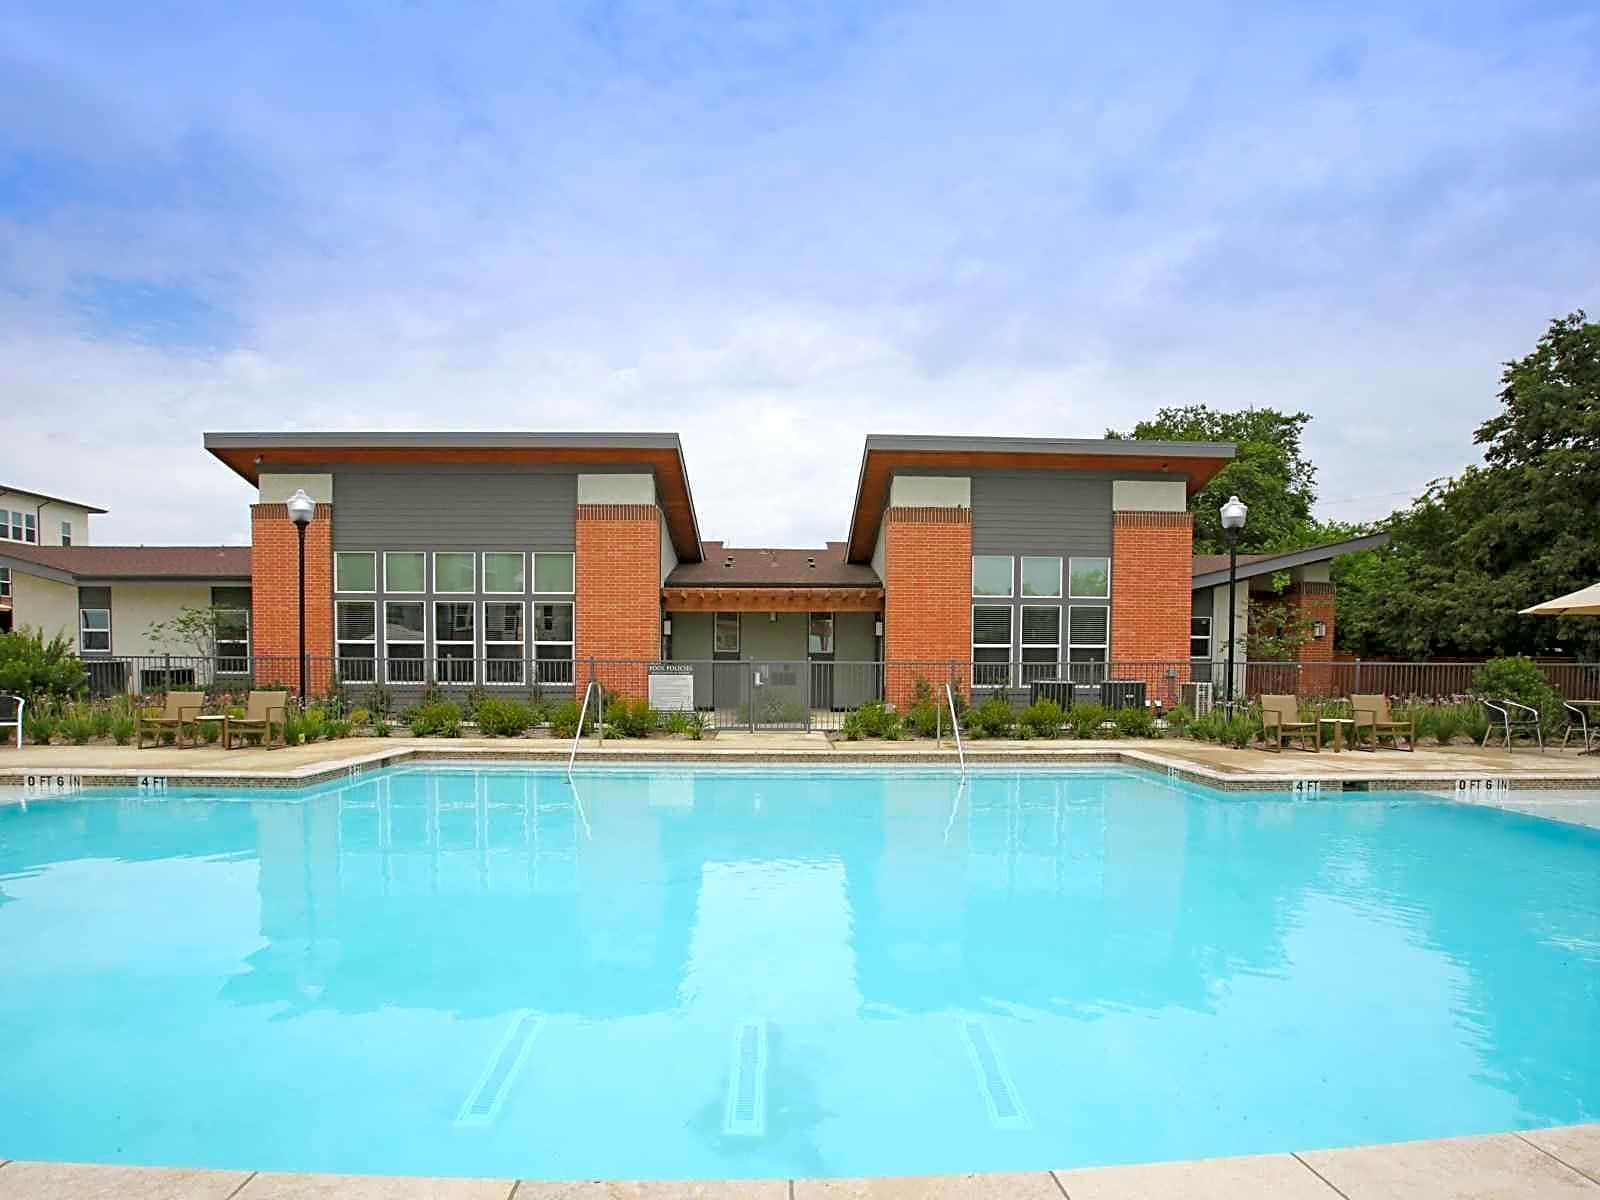 Apartment guide san marcos tx the cottages at san marcos - Cheap 1 bedroom apartments in san marcos tx ...